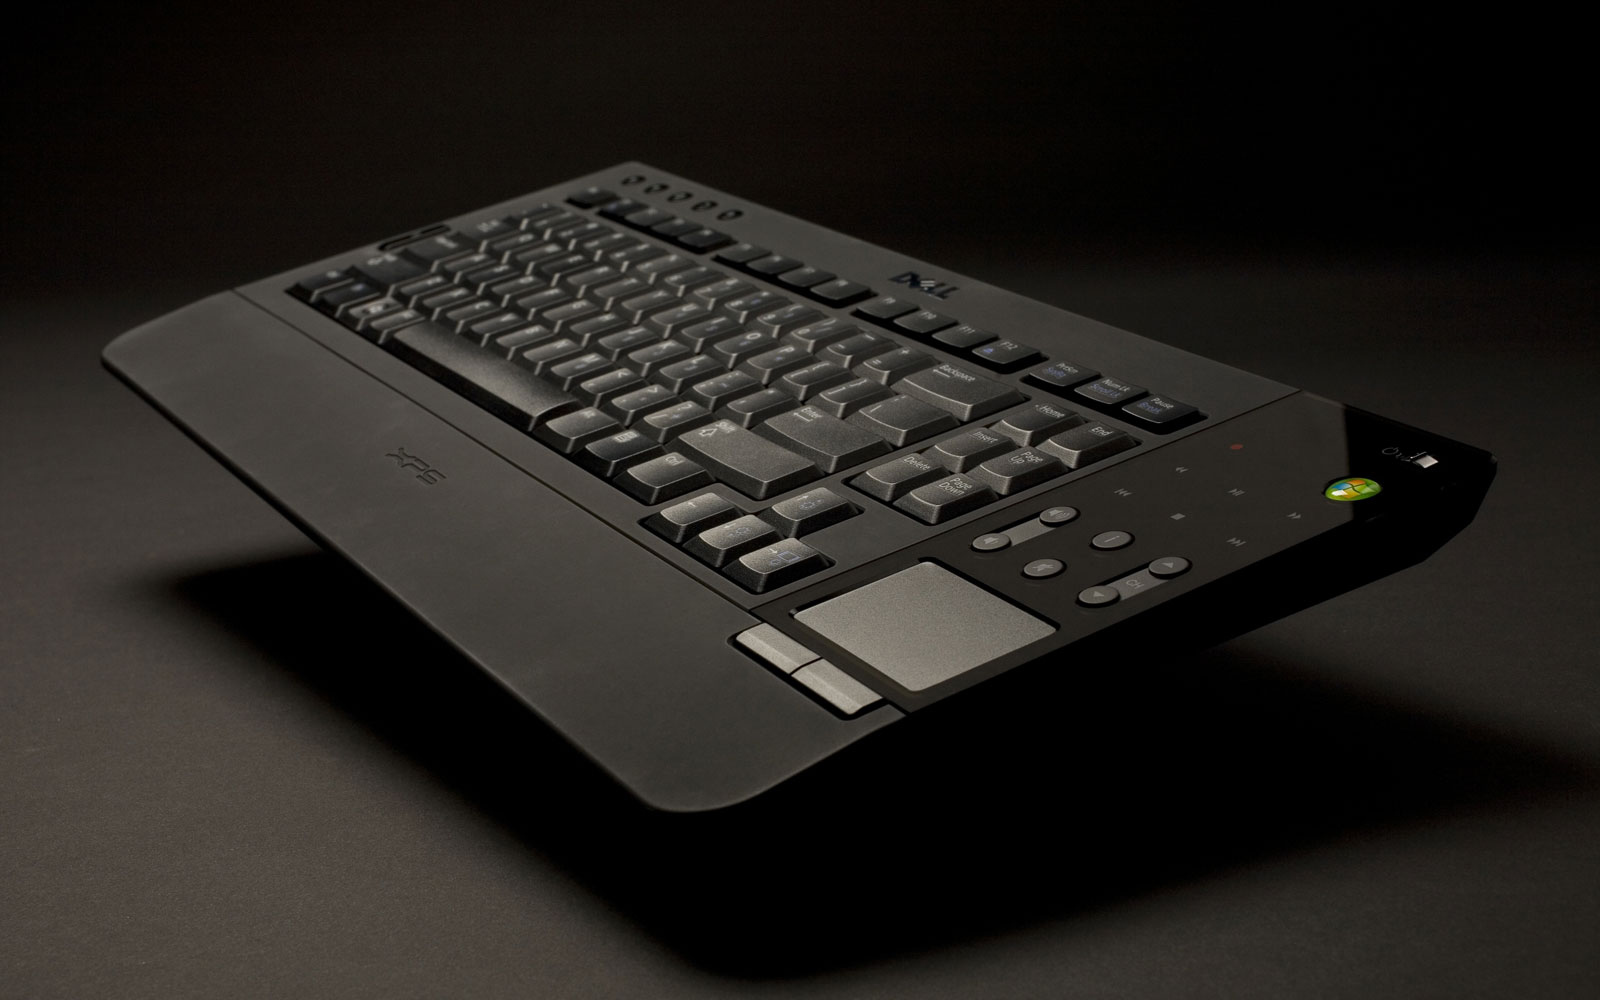 DELL XPS-one - Wireless Keyboard